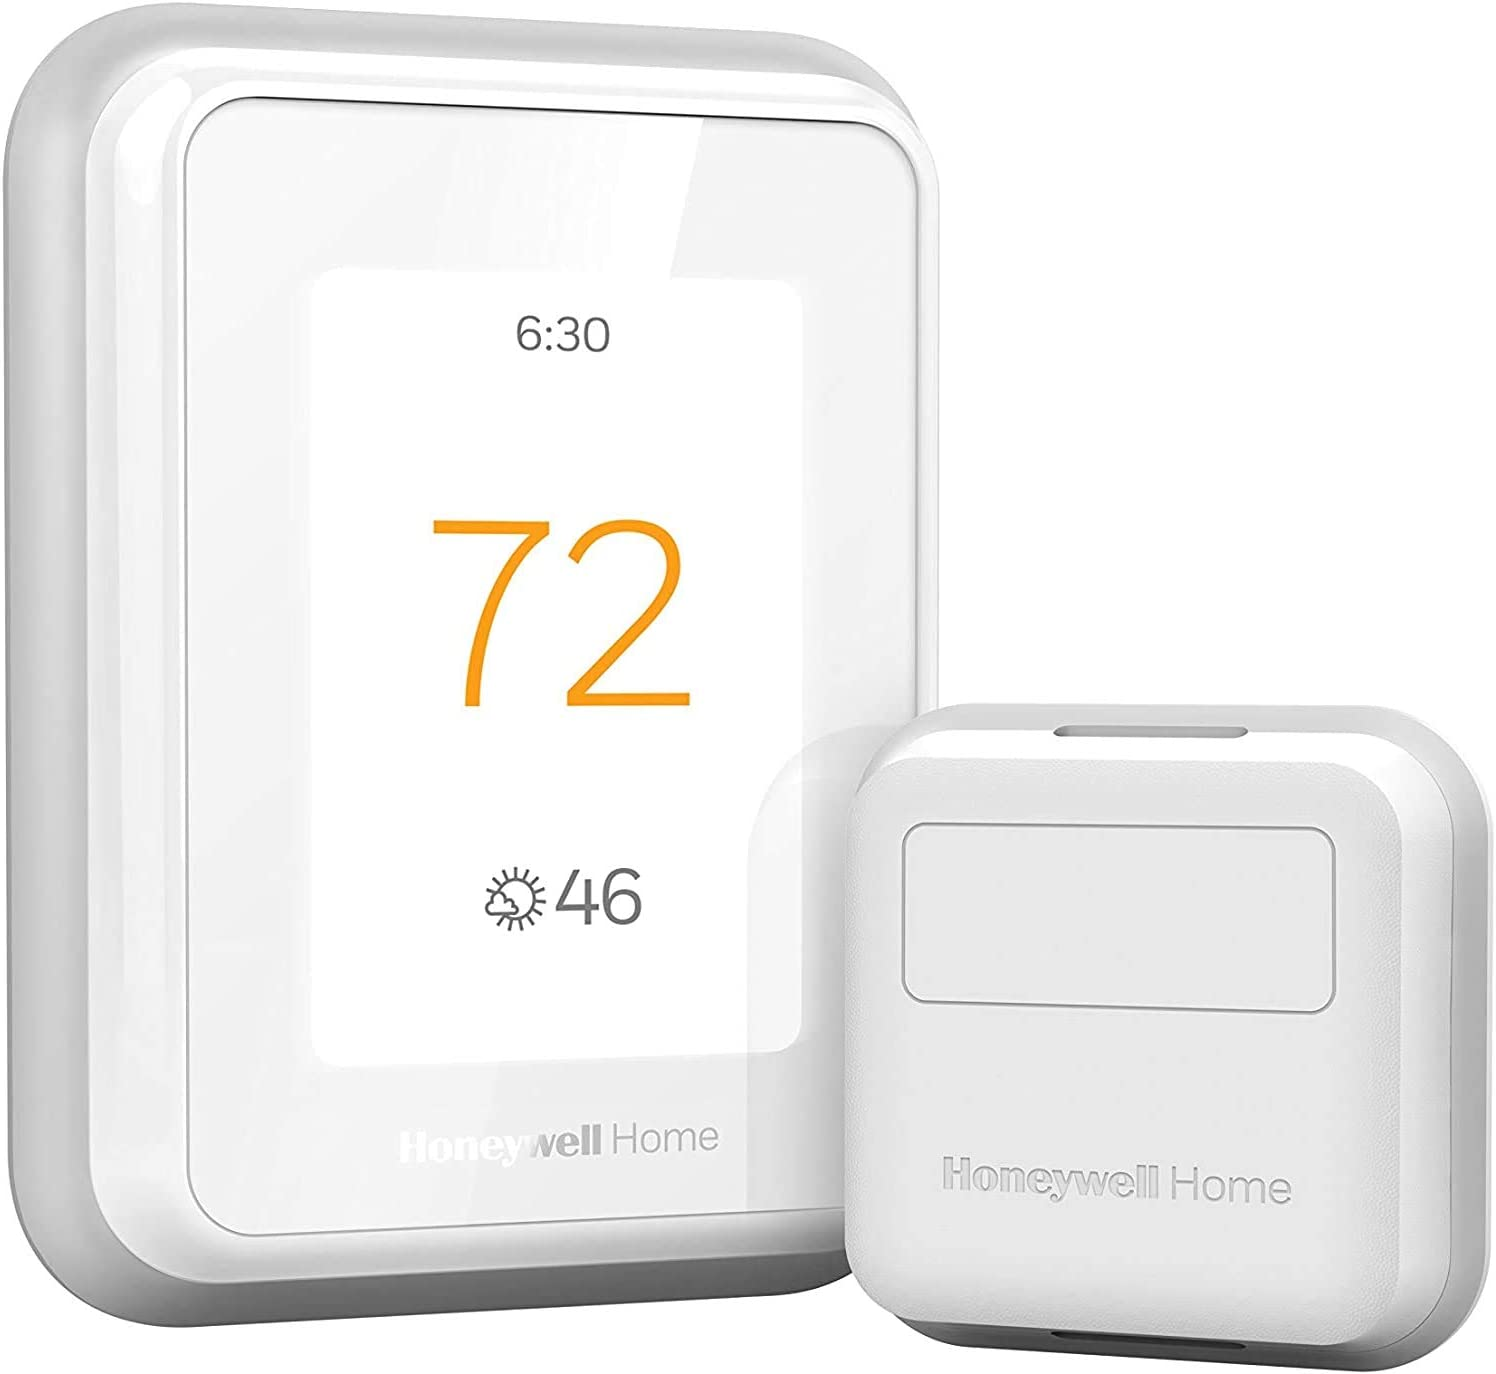 Honeywell Home RCHT9610WFSW2003 RCHT9610WFSW T9 WiFi Thermostat with 1 Smart Room Sensor, Touchscreen Display, Alexa and Google Assist (Renewed)